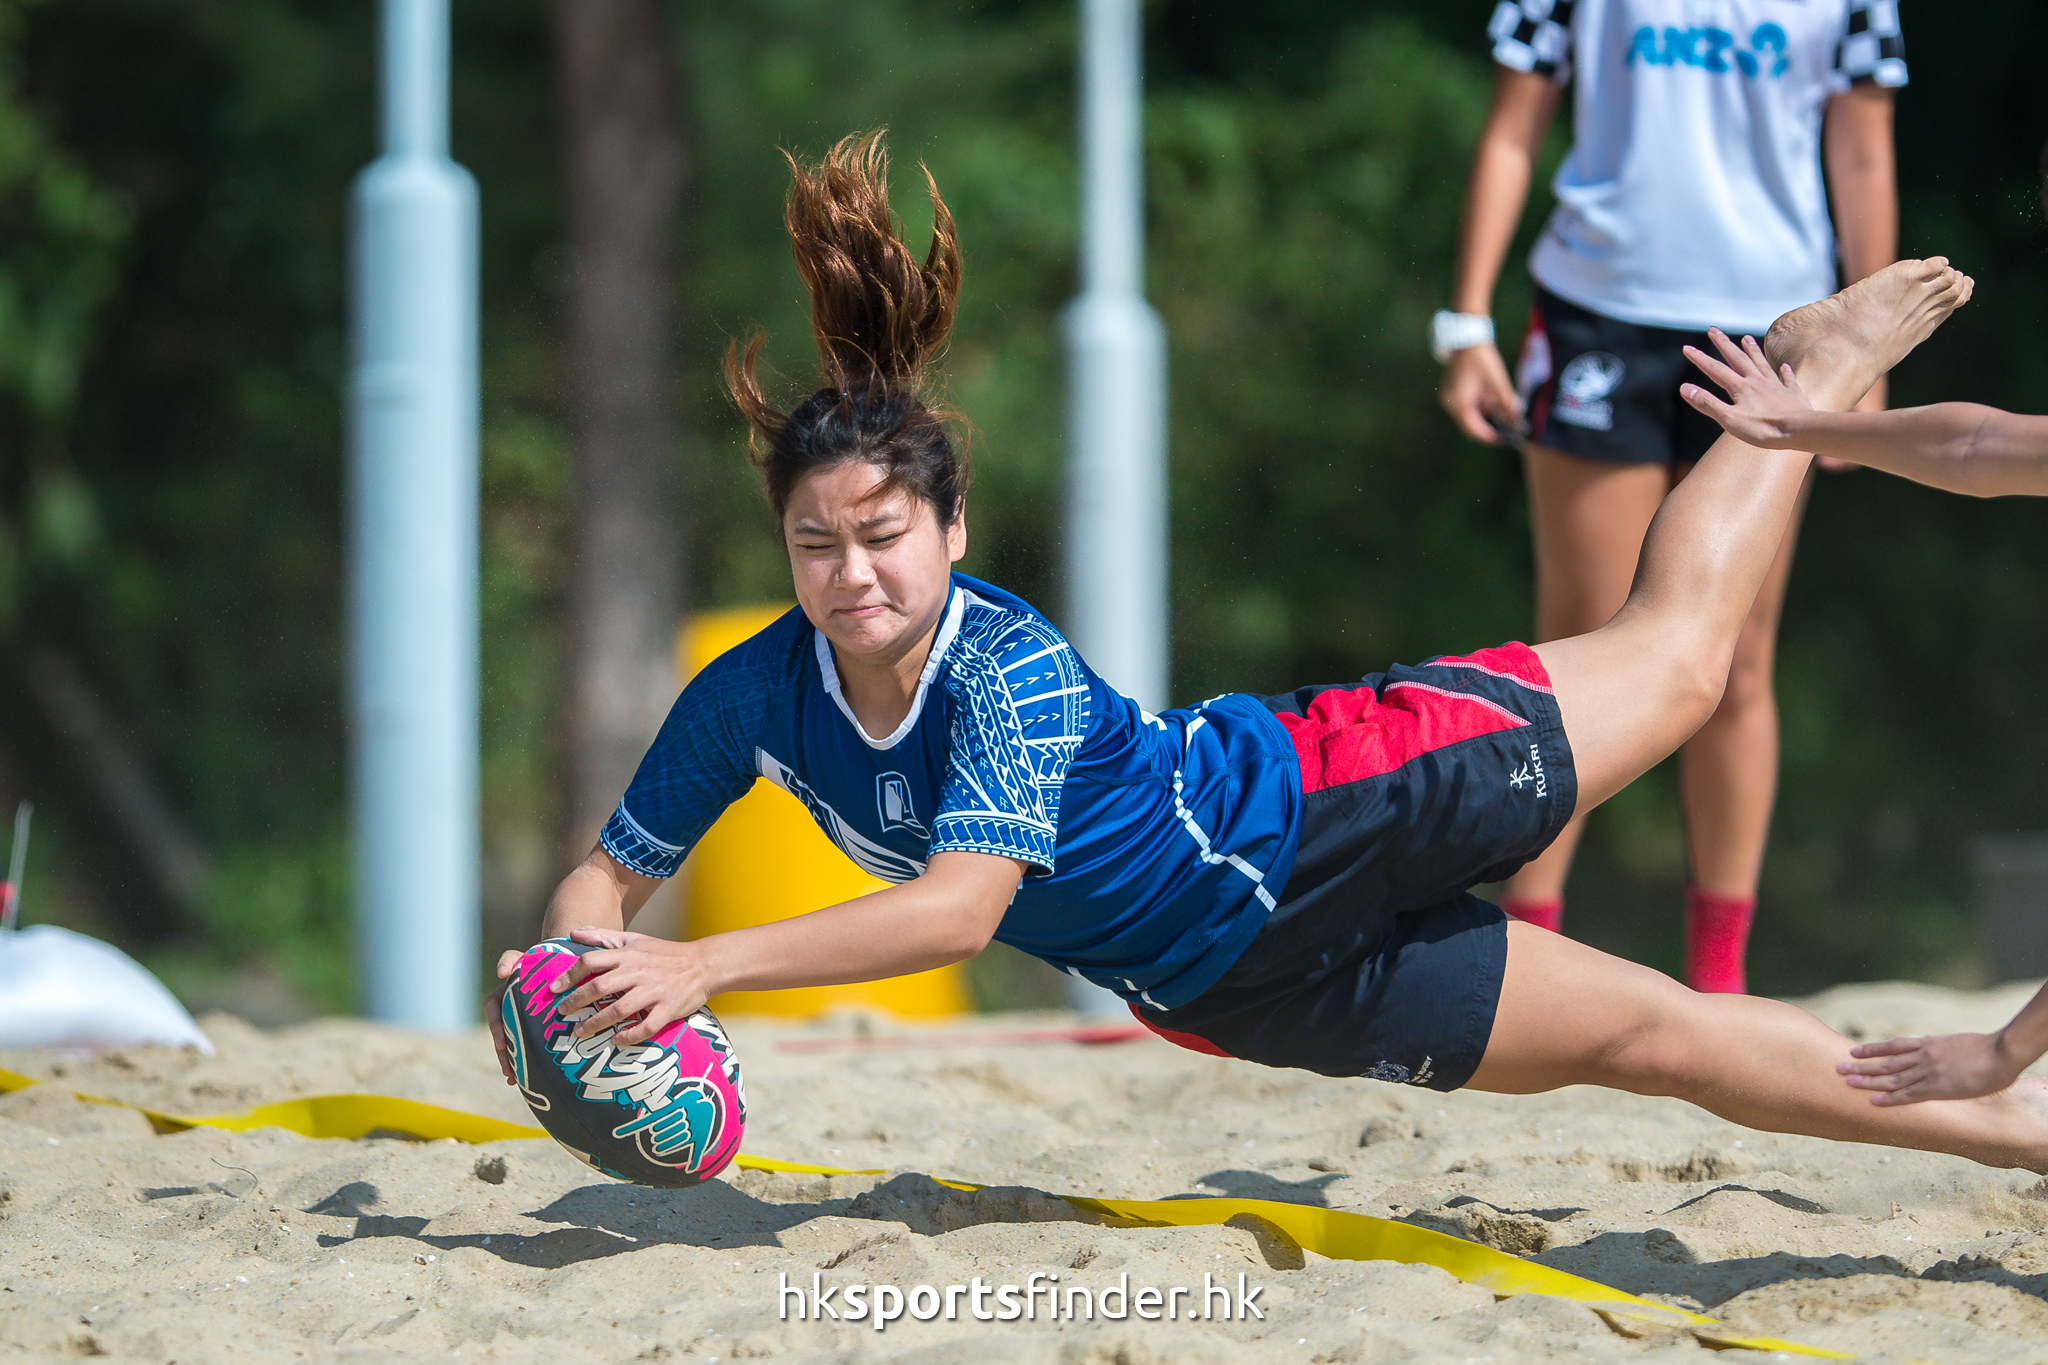 Her_GoldCoastTertiaryBeachRugby_16-11-12 13.20.14_000964.jpg